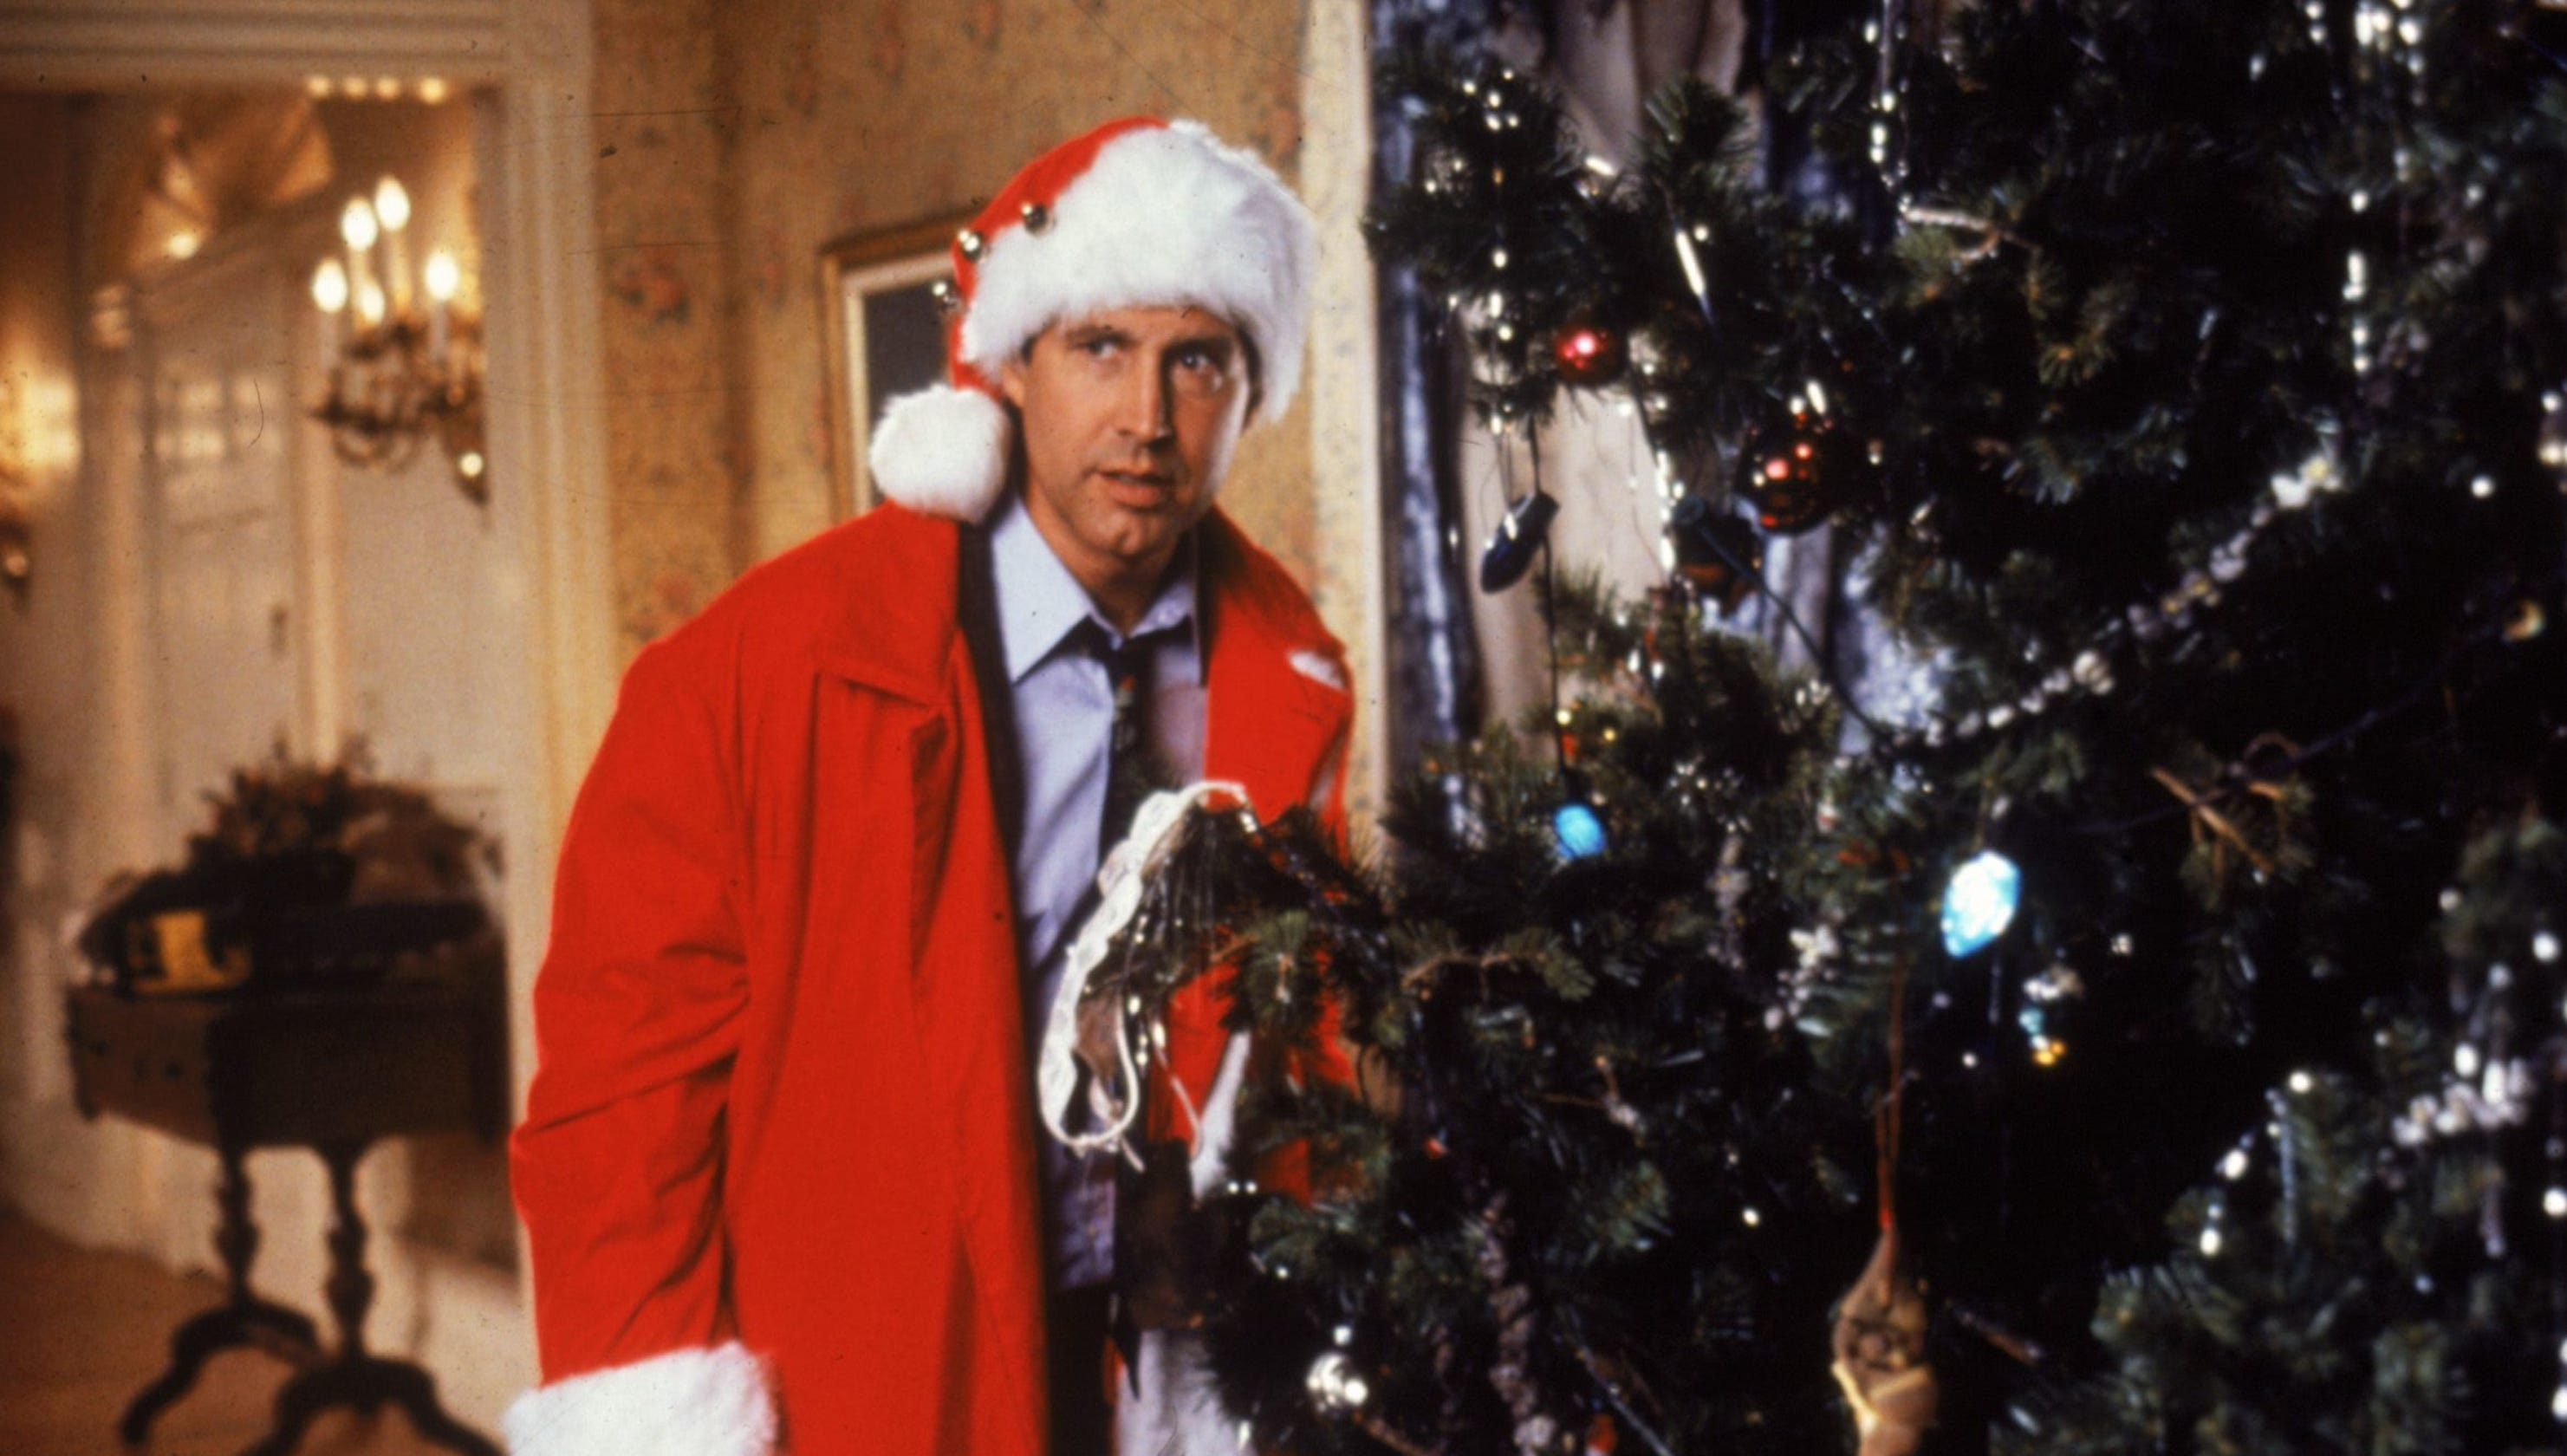 Griswold Christmas.Passerby Calls 911 After Seeing Clark Griswold Hanging Off